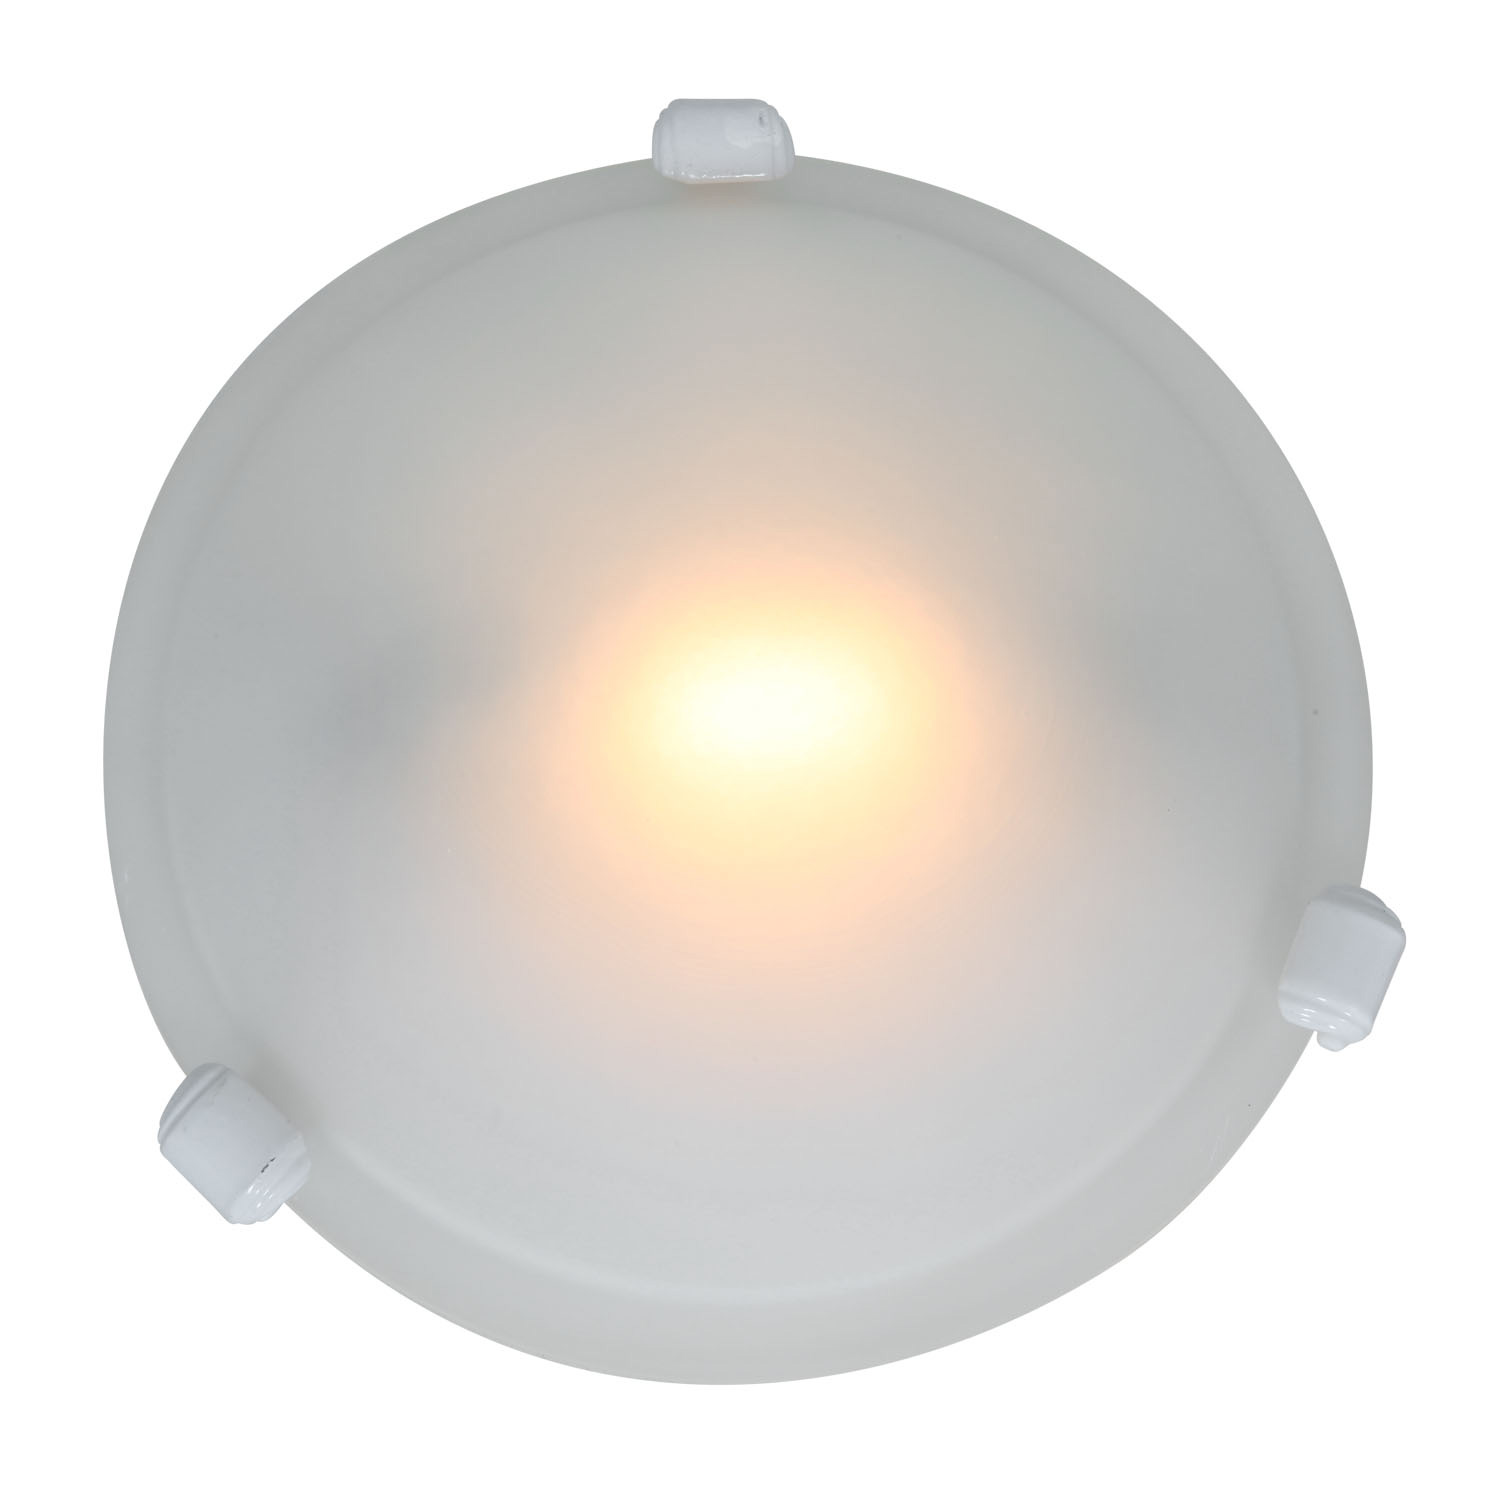 Nimbus small ceiling light fixture by access